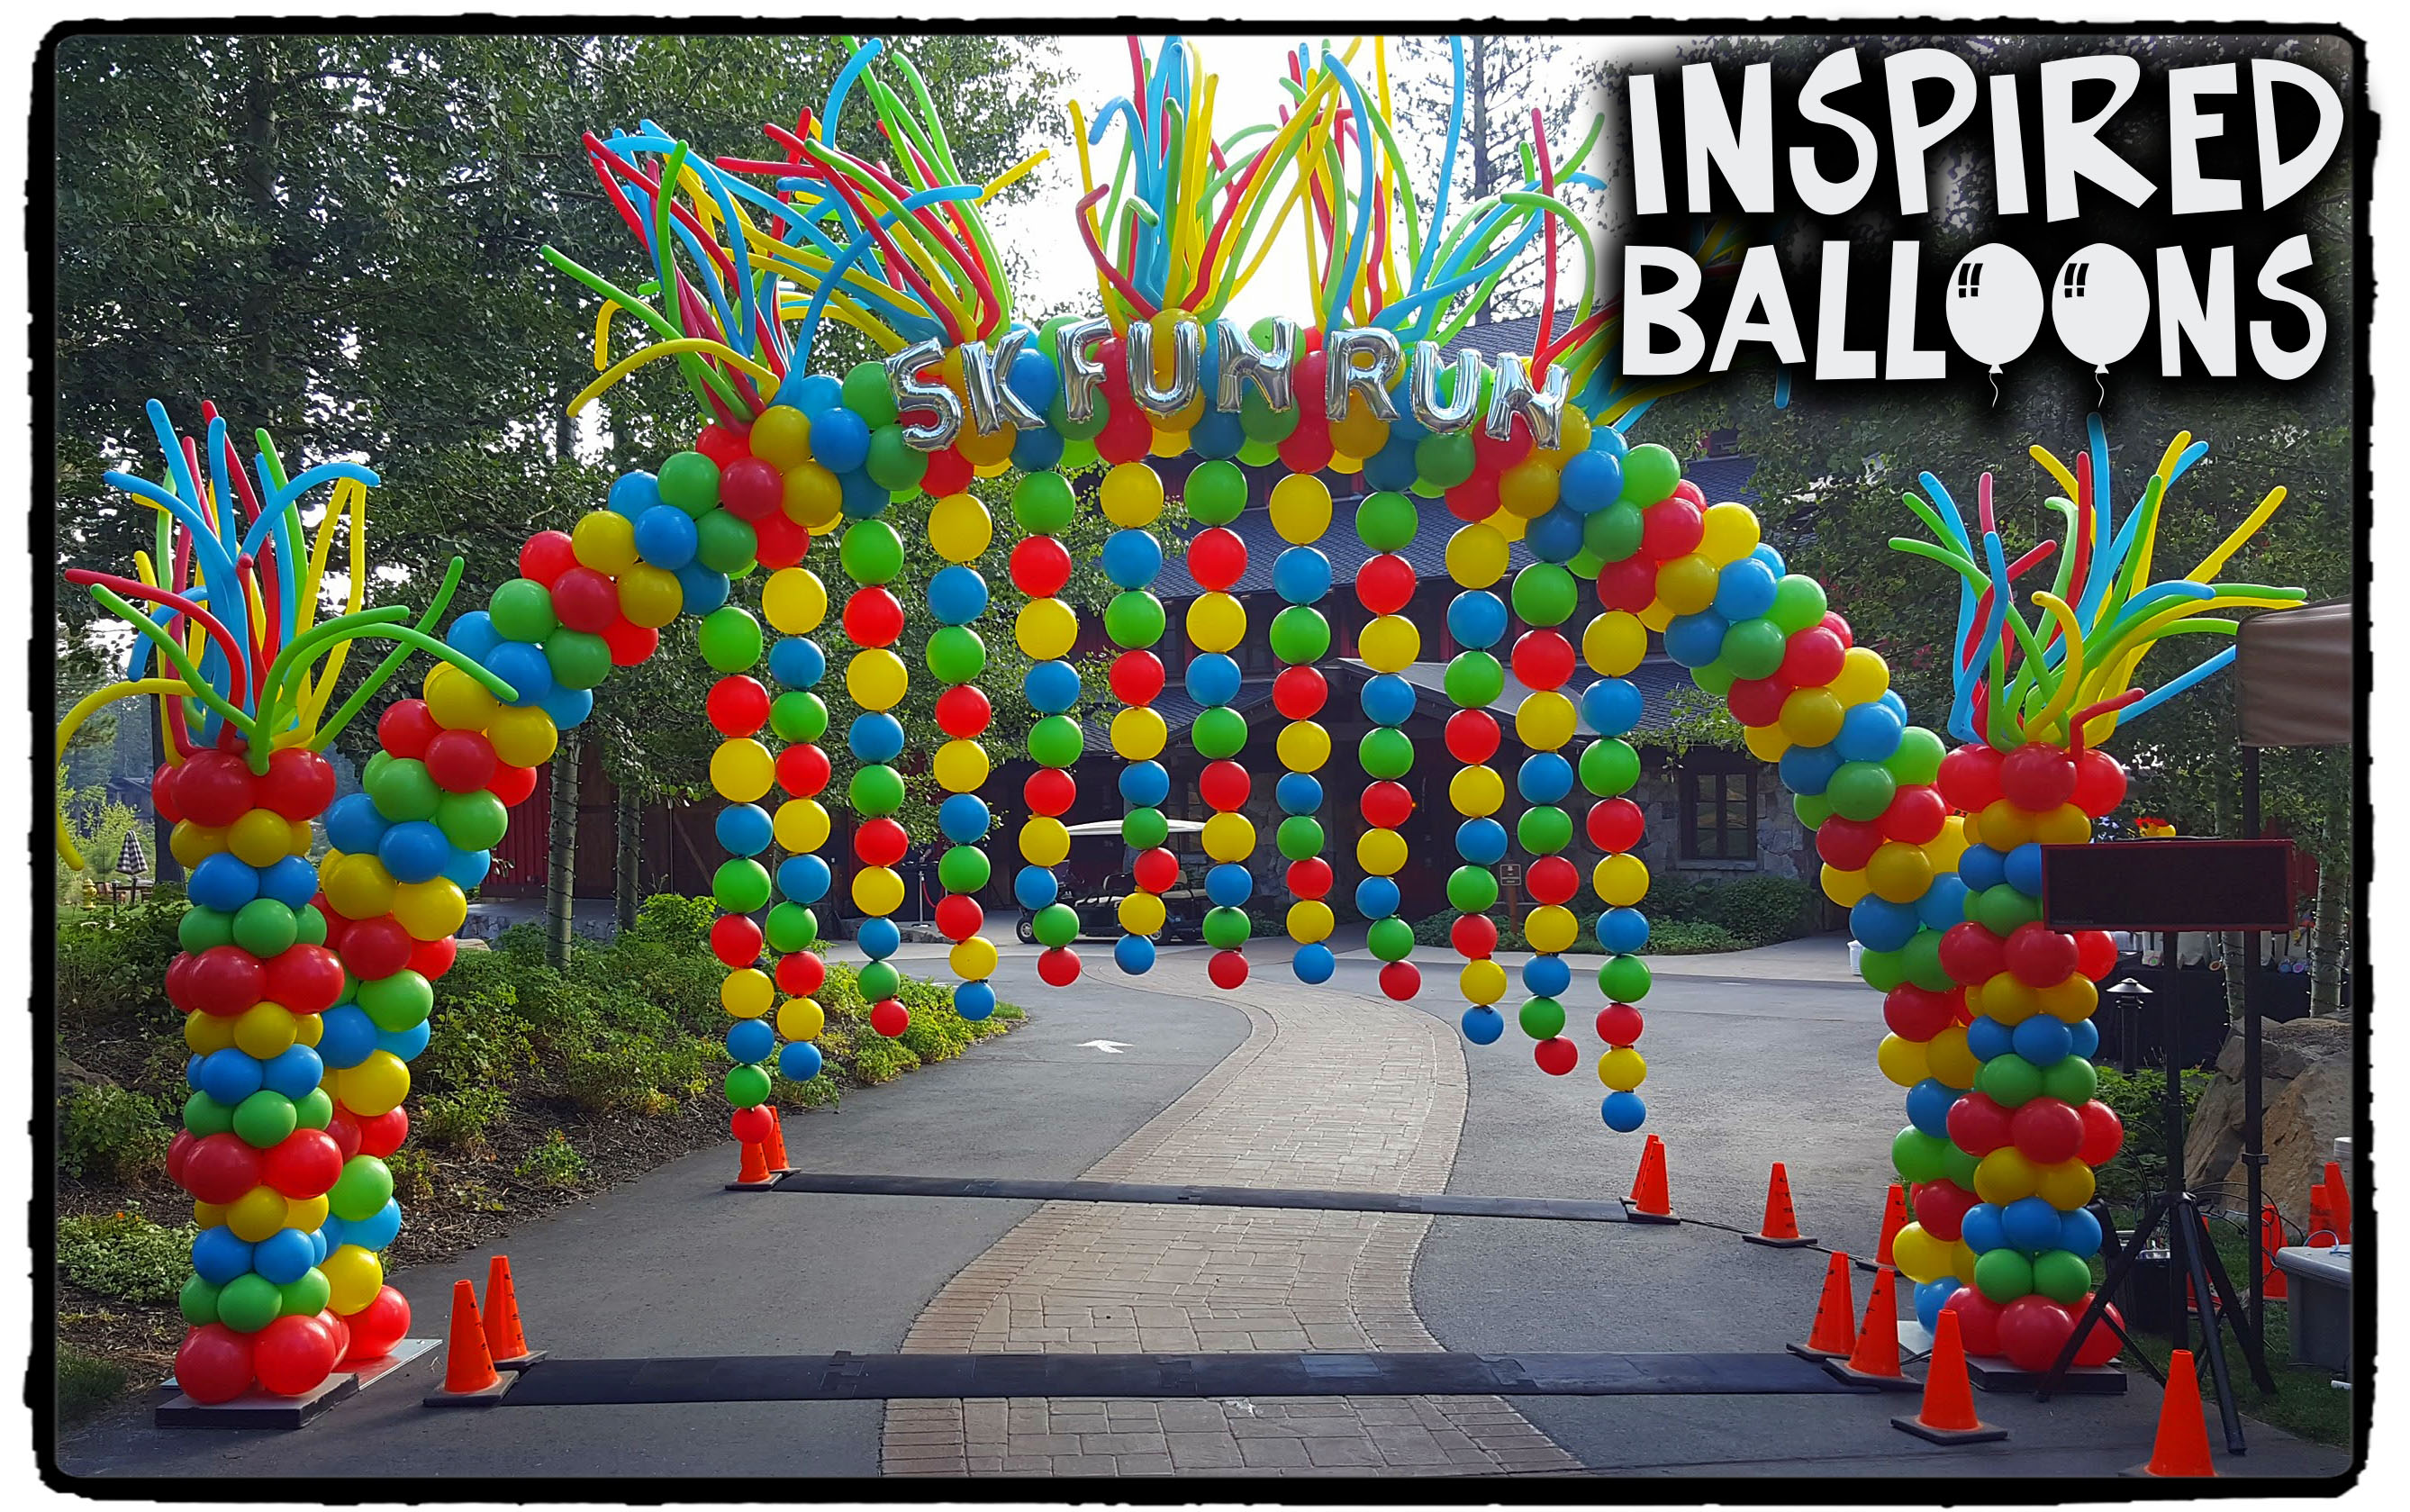 5K Fun Run Balloon Arch